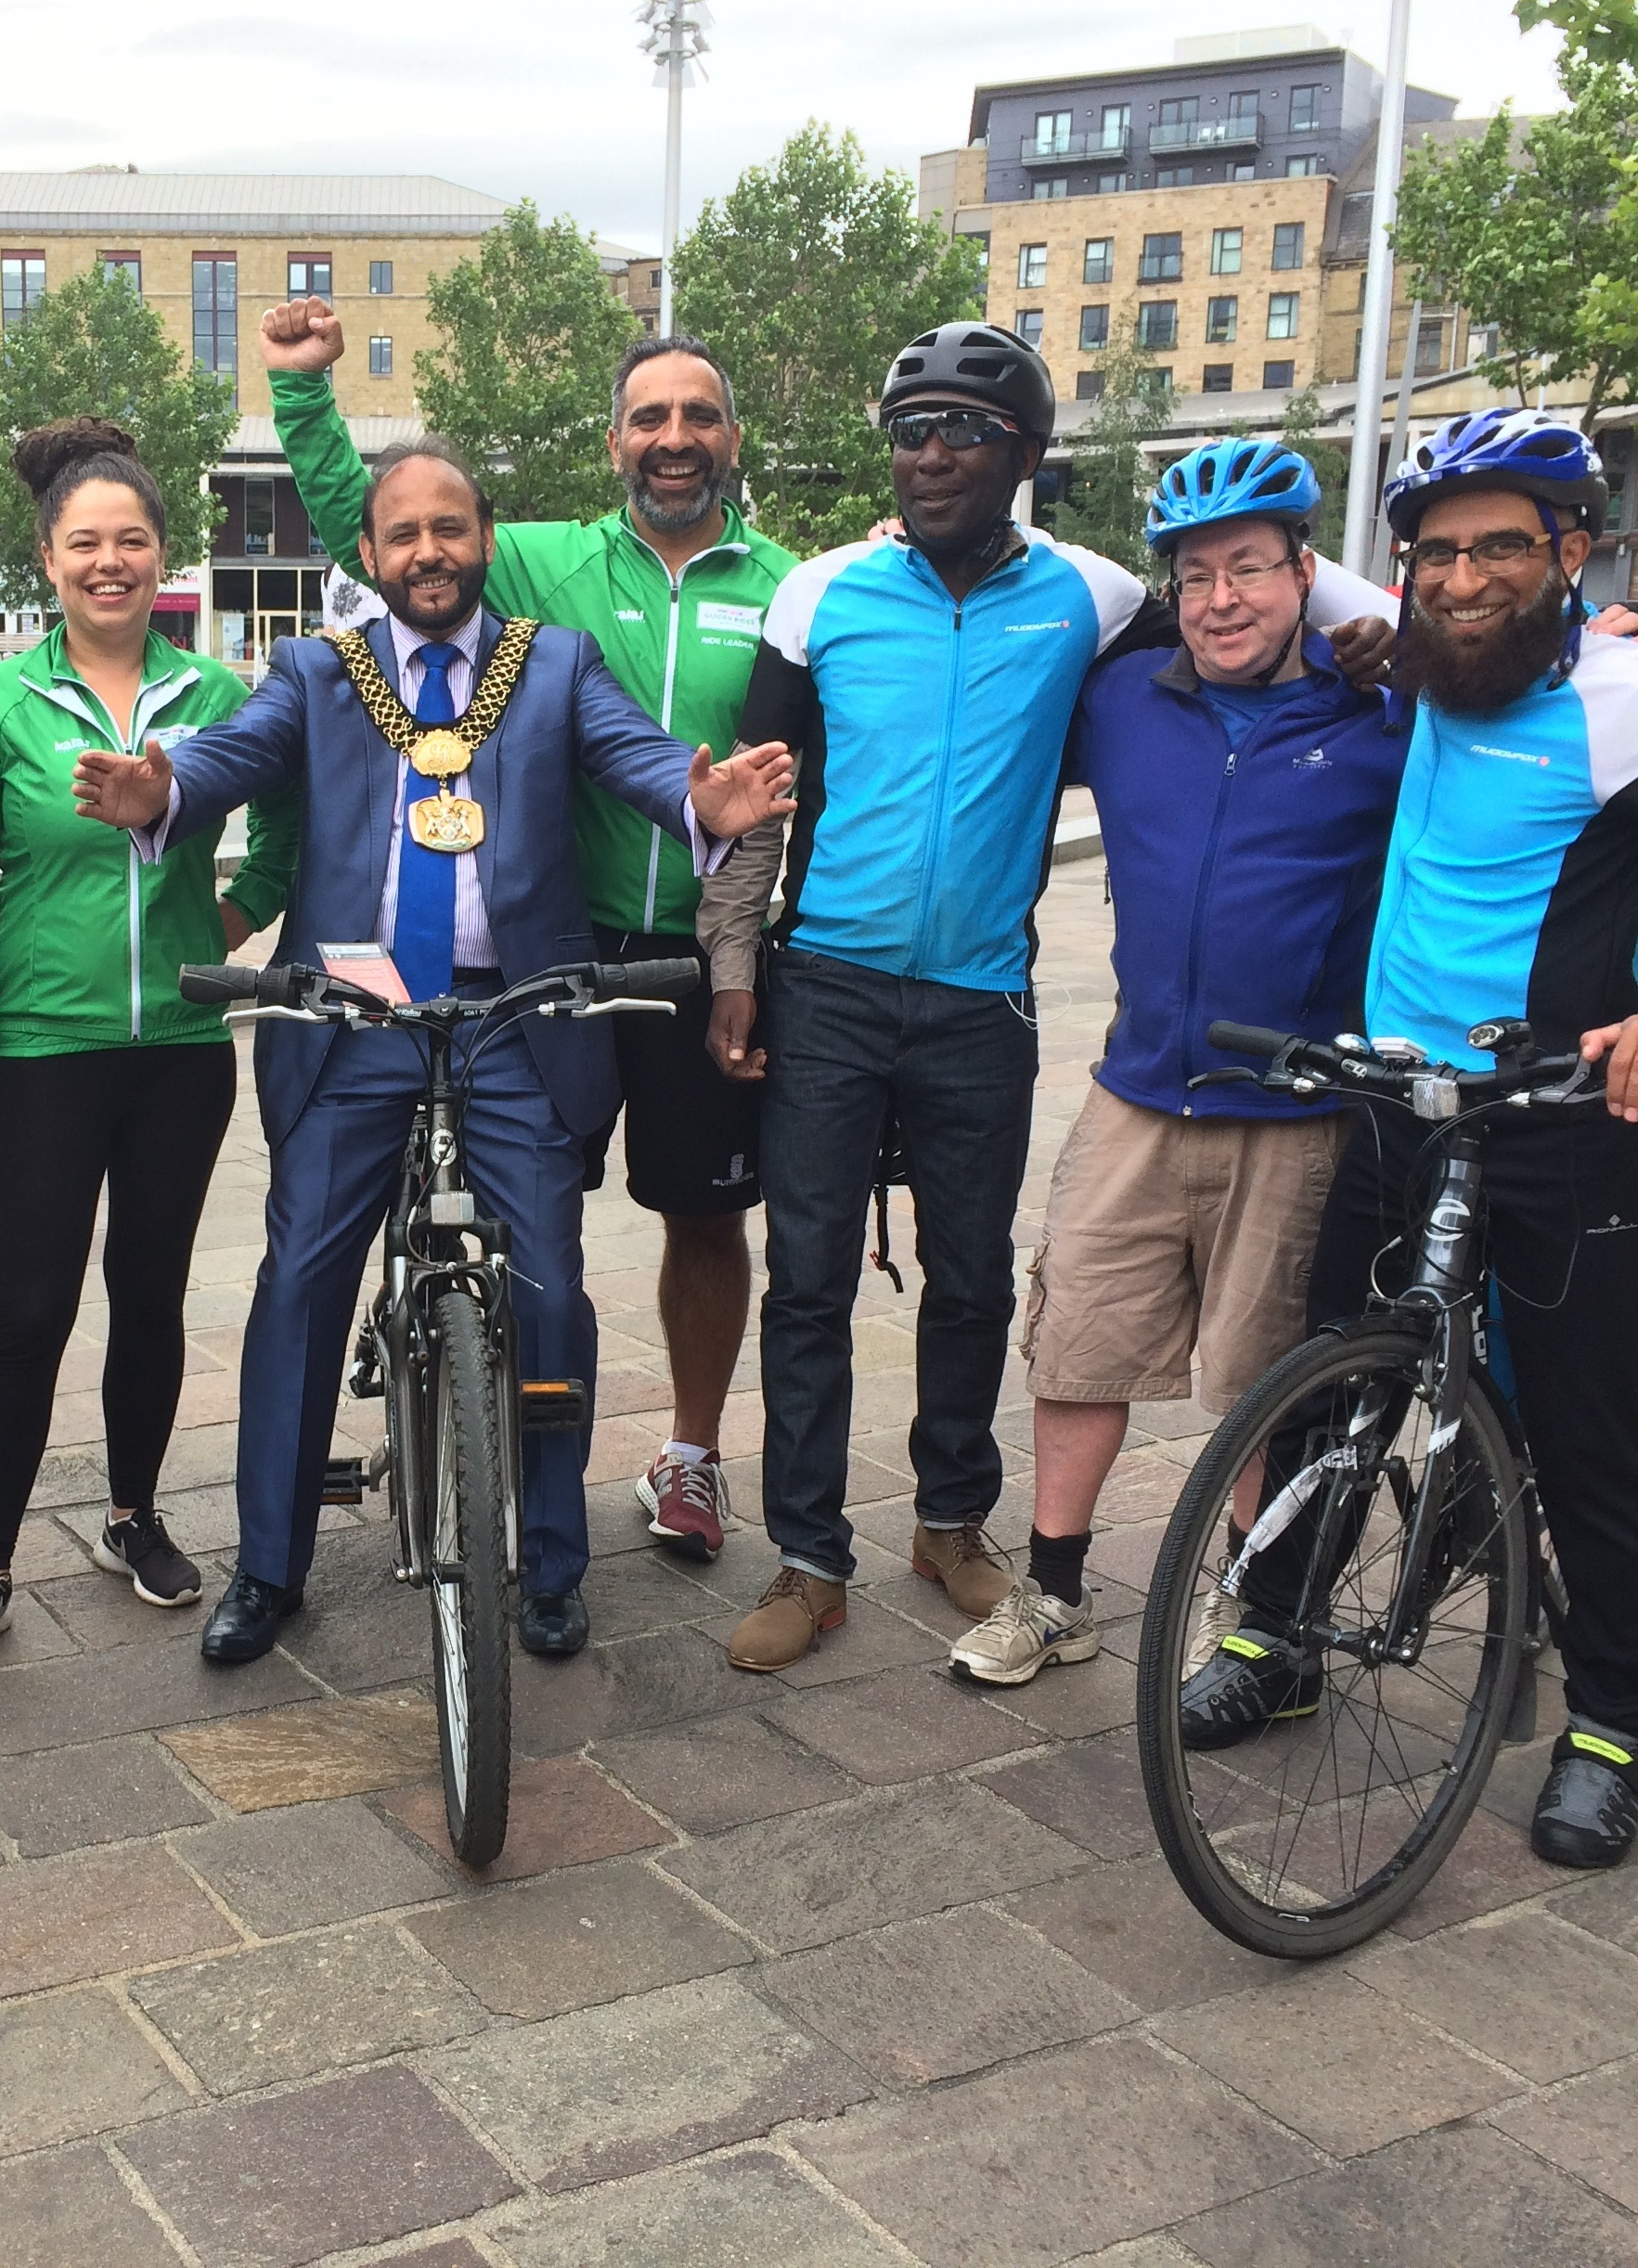 Rifaqat Ali (right) with cyclists taking part in a charity ride in July to benefit victims of the Manchester Arena bombing